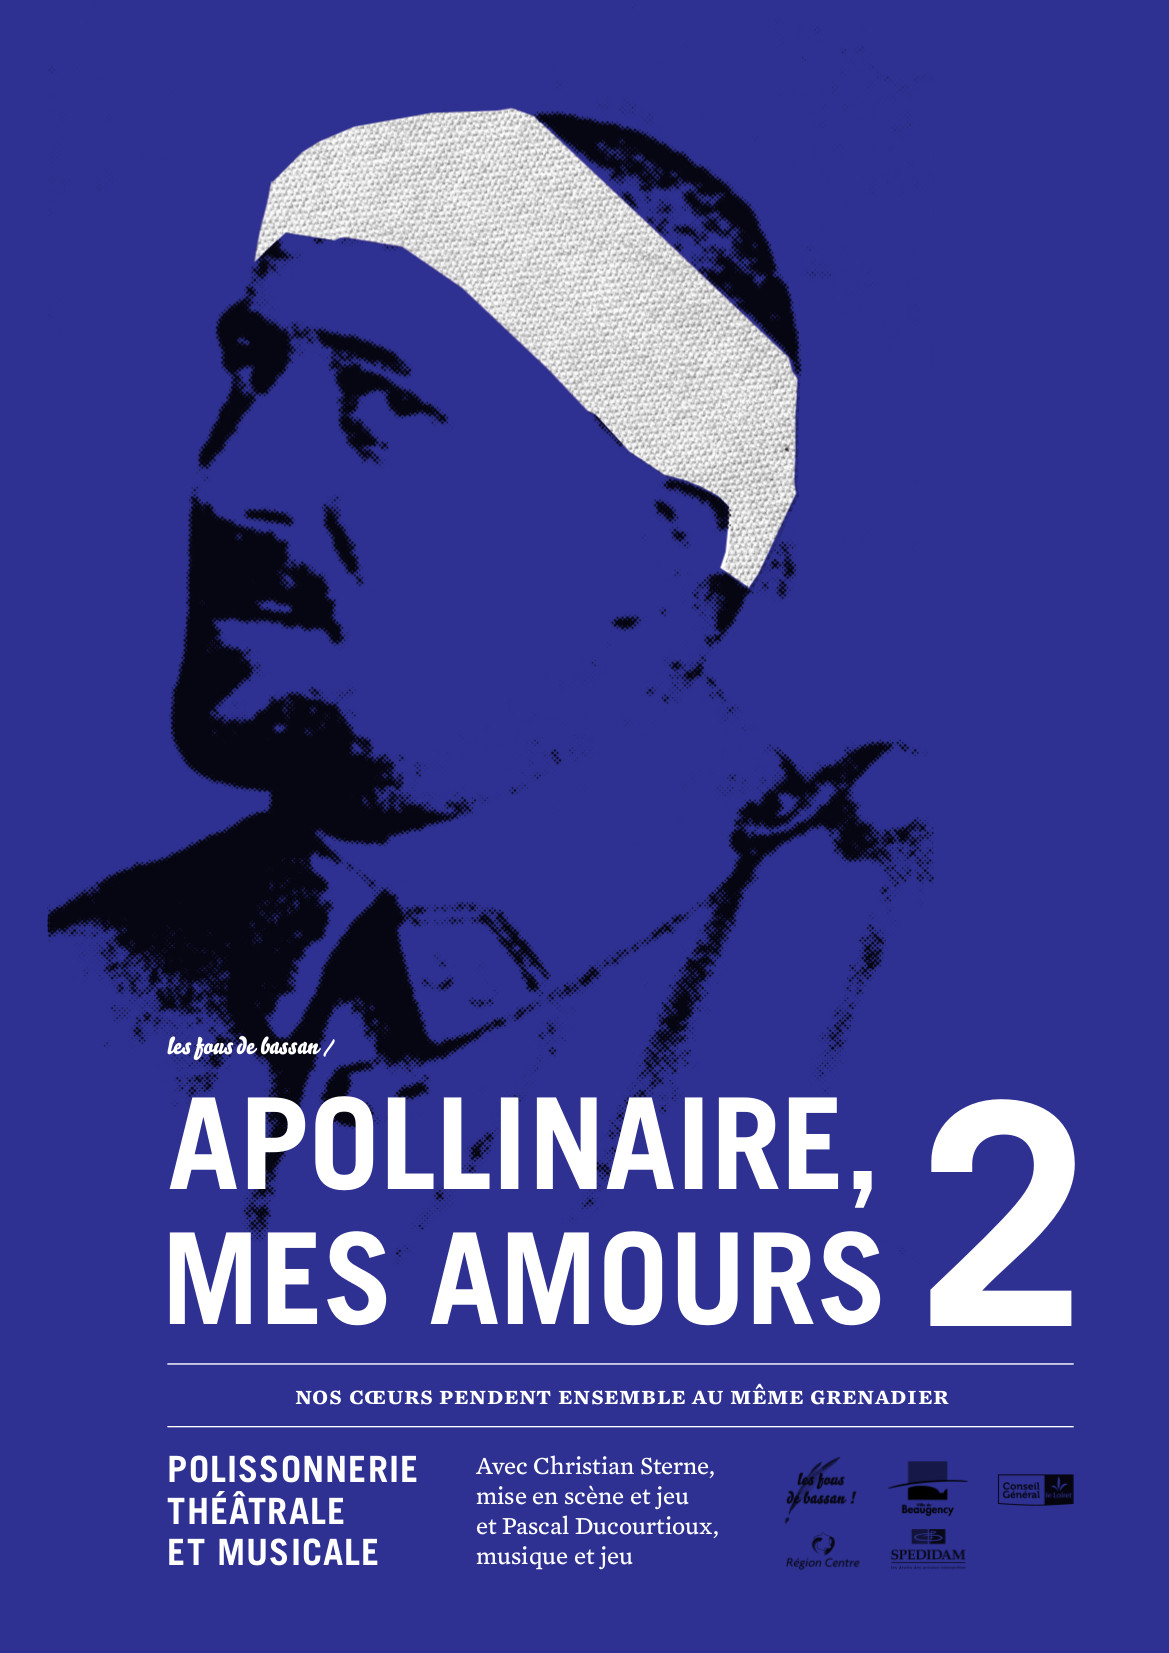 APOLLINAIRE MES AMOURS 2